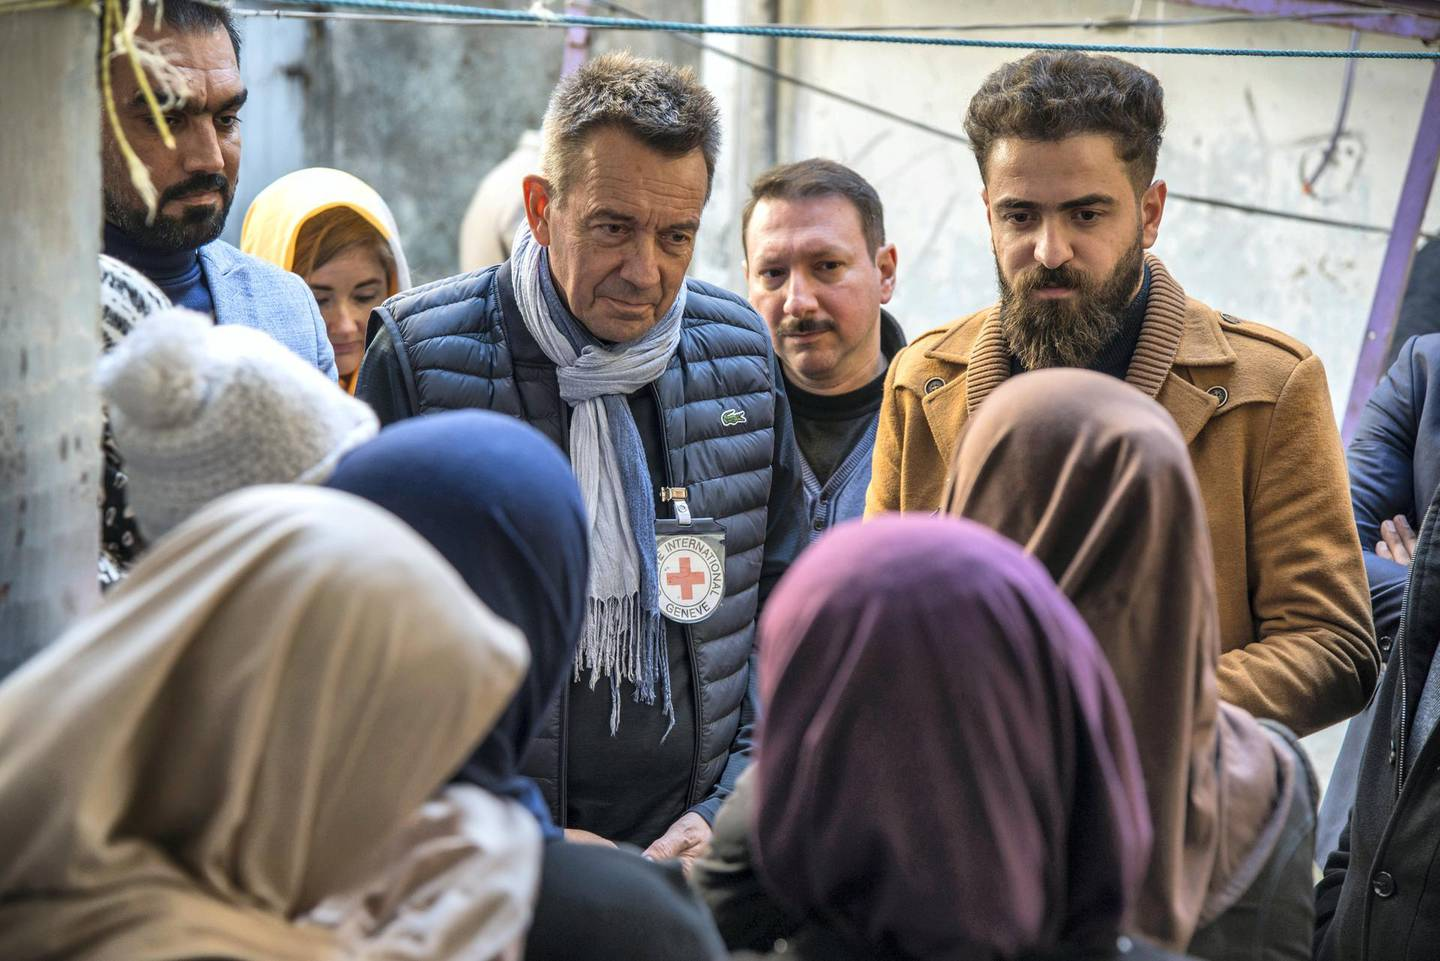 Mosul. The ICRC president, Peter Maurer, is listening to what families have experienced during the war and their suffering.